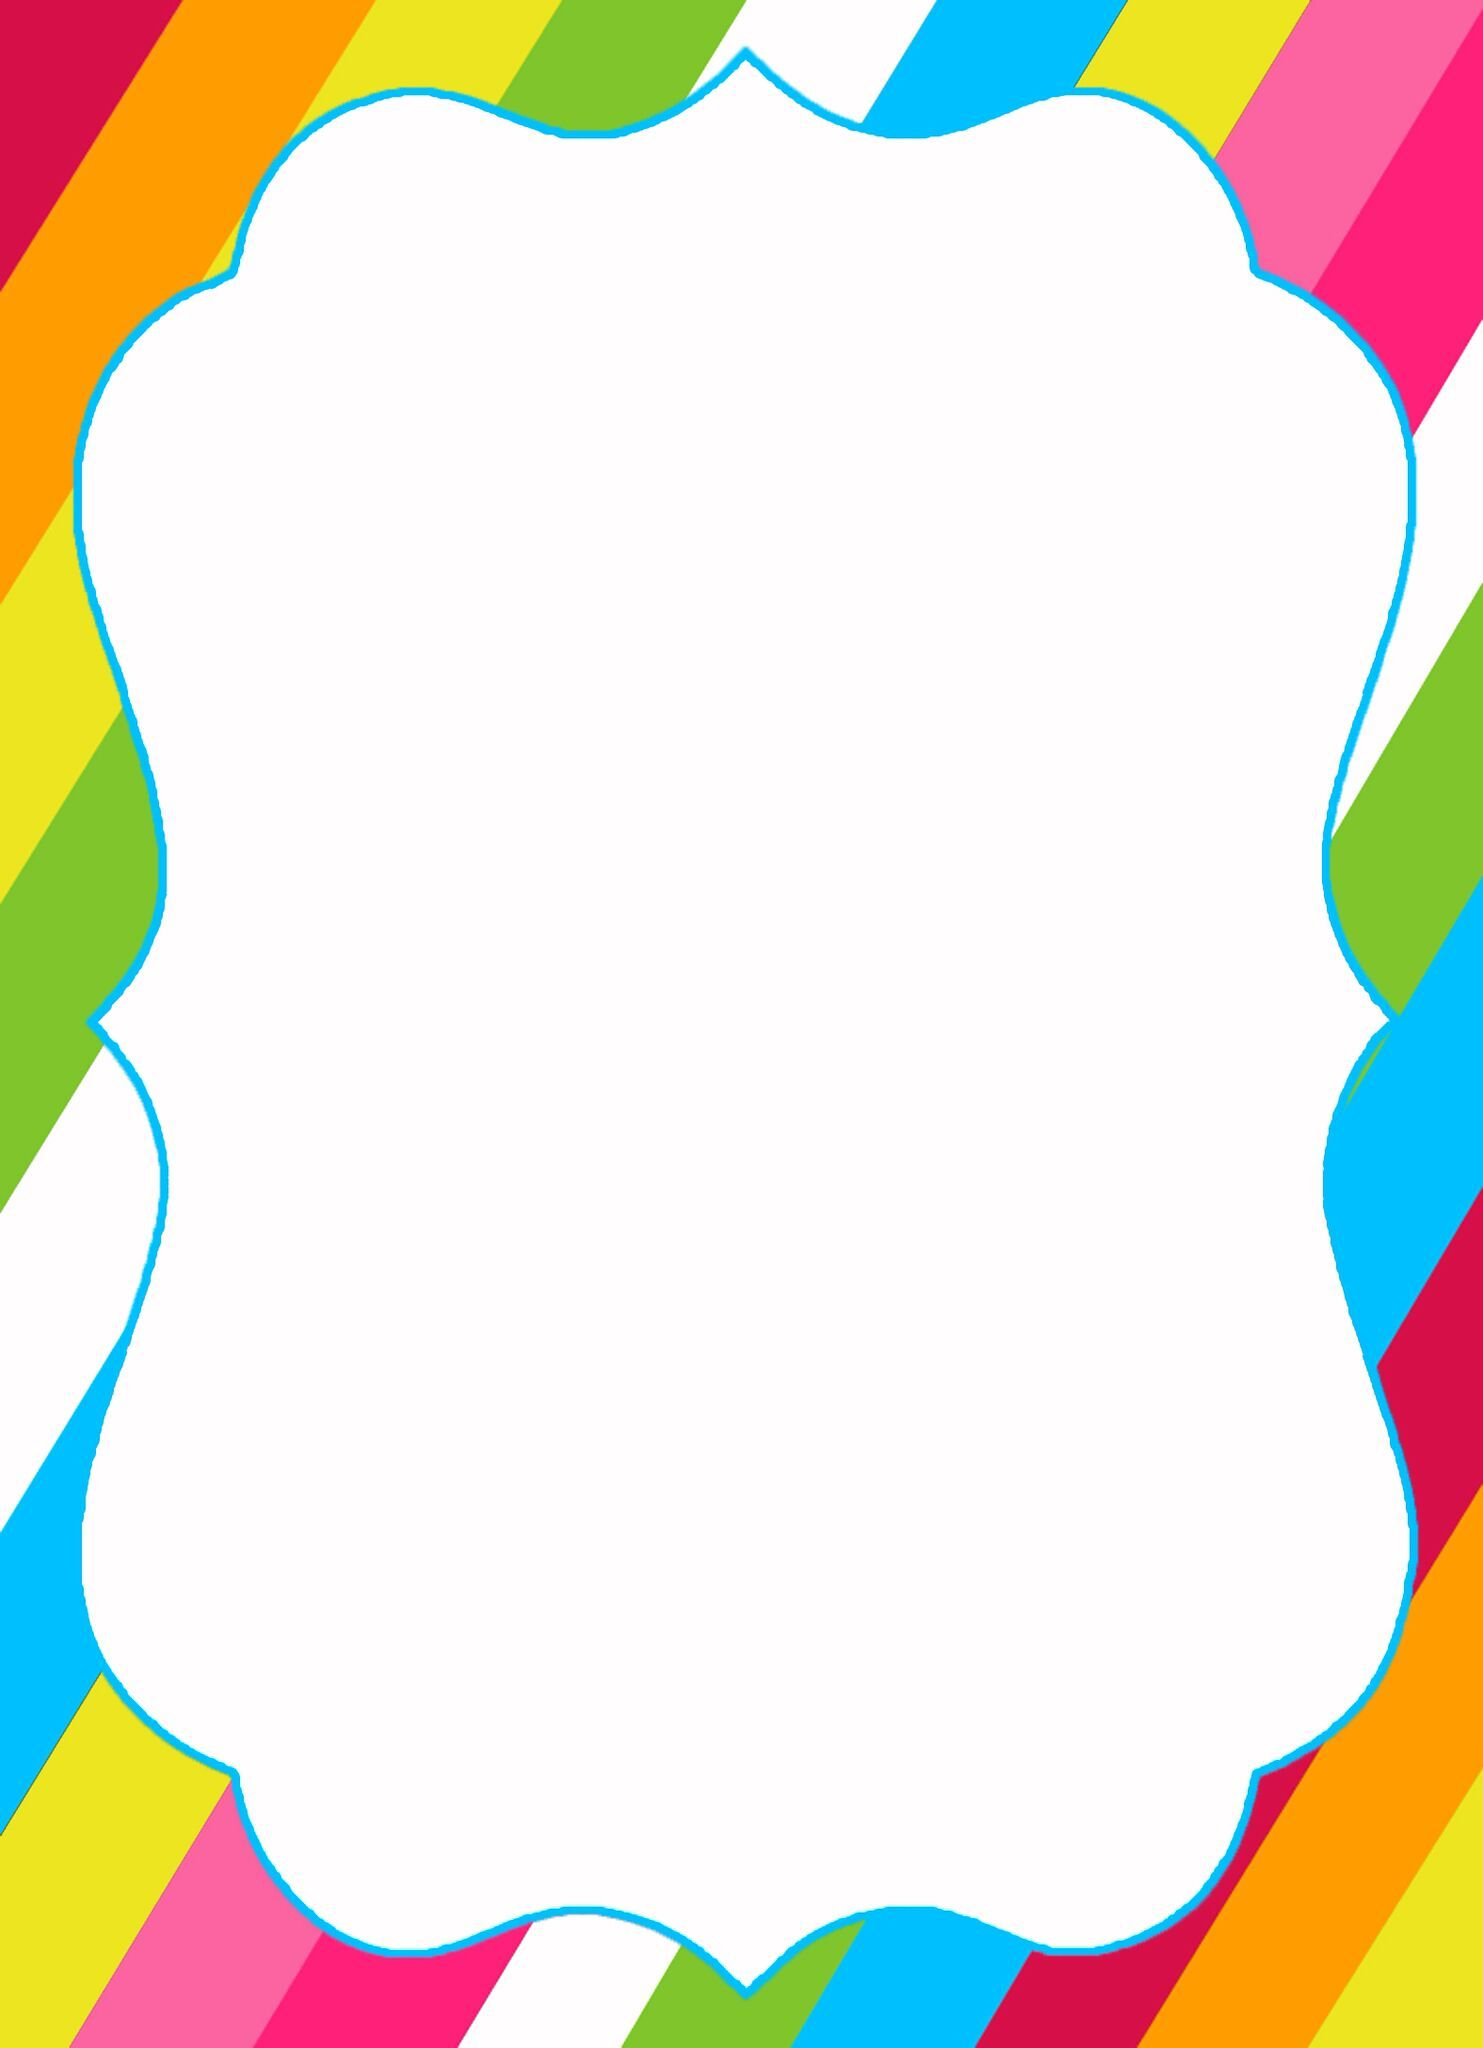 Candyland border clipart png royalty free Candyland Border Png - Clip Art Library png royalty free